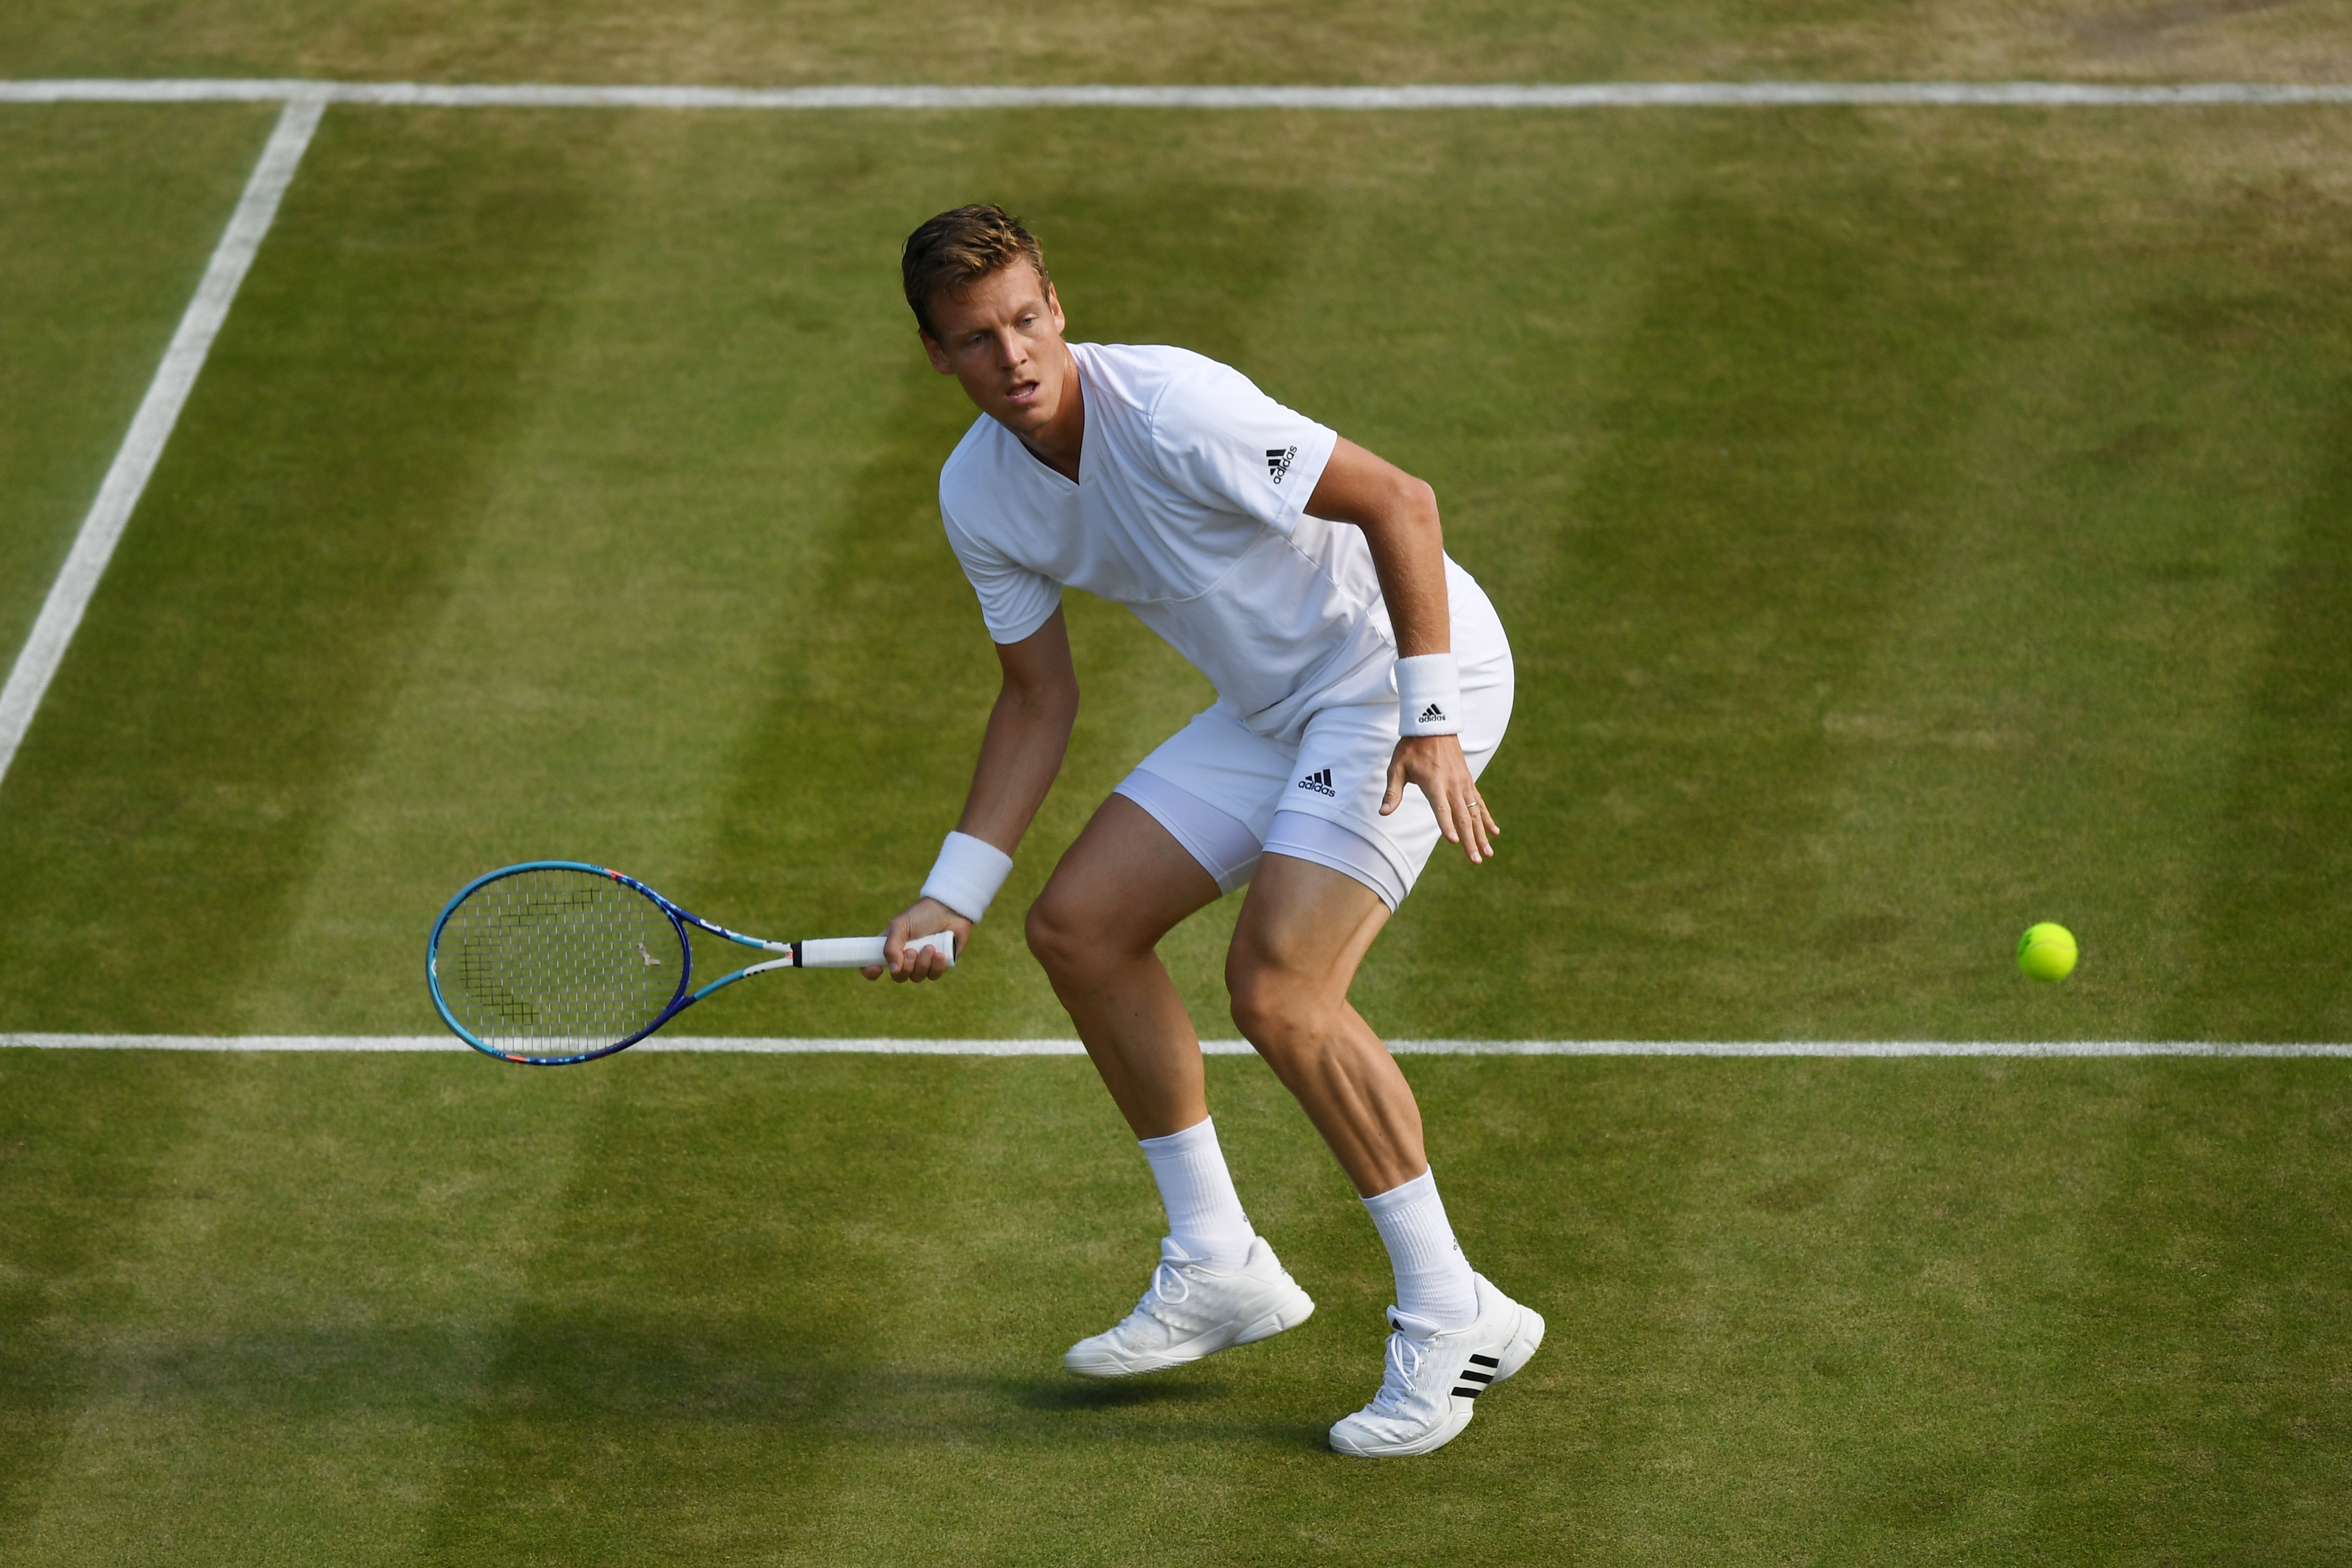 Tomas Berdych takes on Murray in the Wimbledon semi-finals.